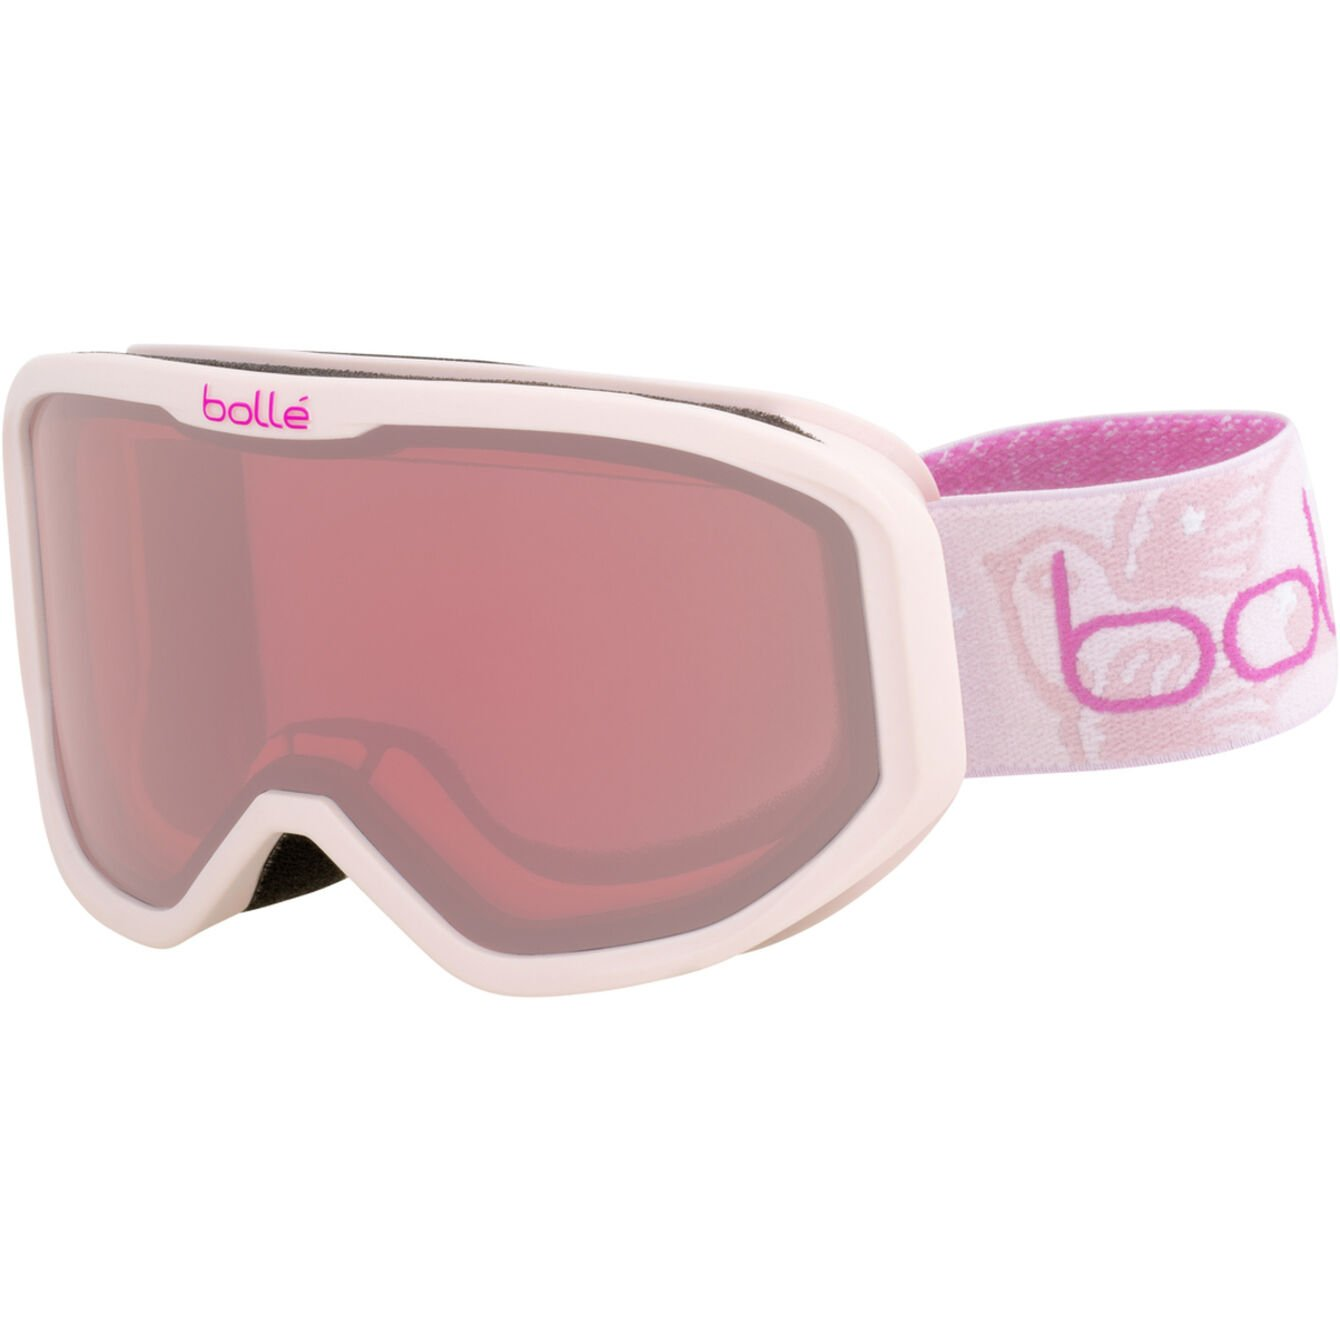 Bolle Inuk Goggles 2021